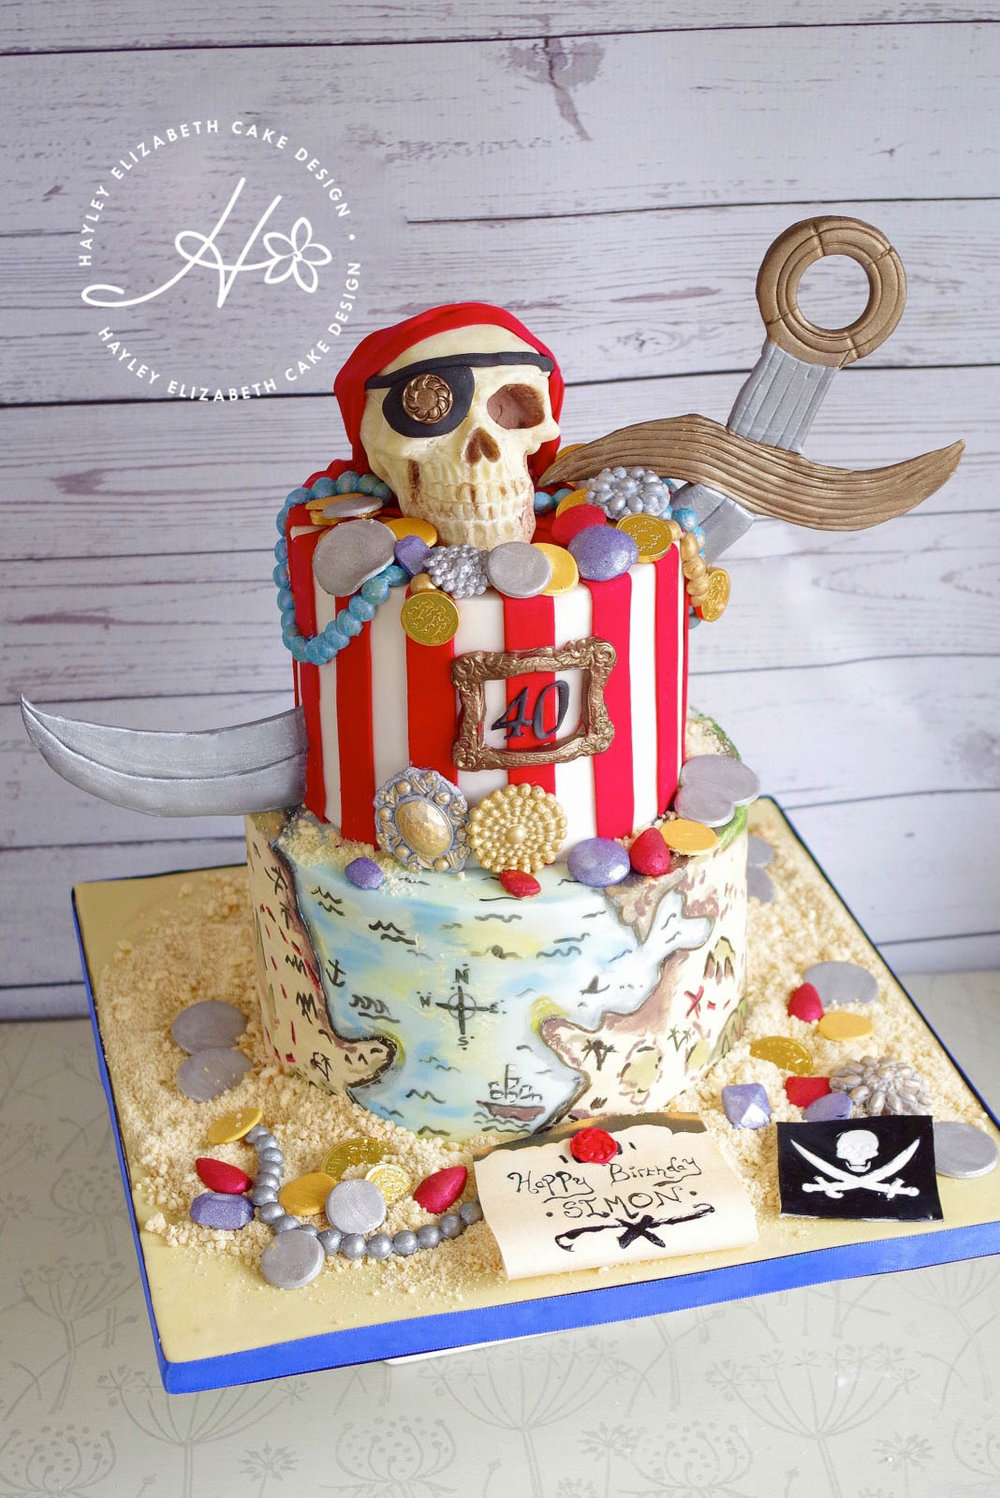 pirate-cake-with-skull-and-cutlas.jpg